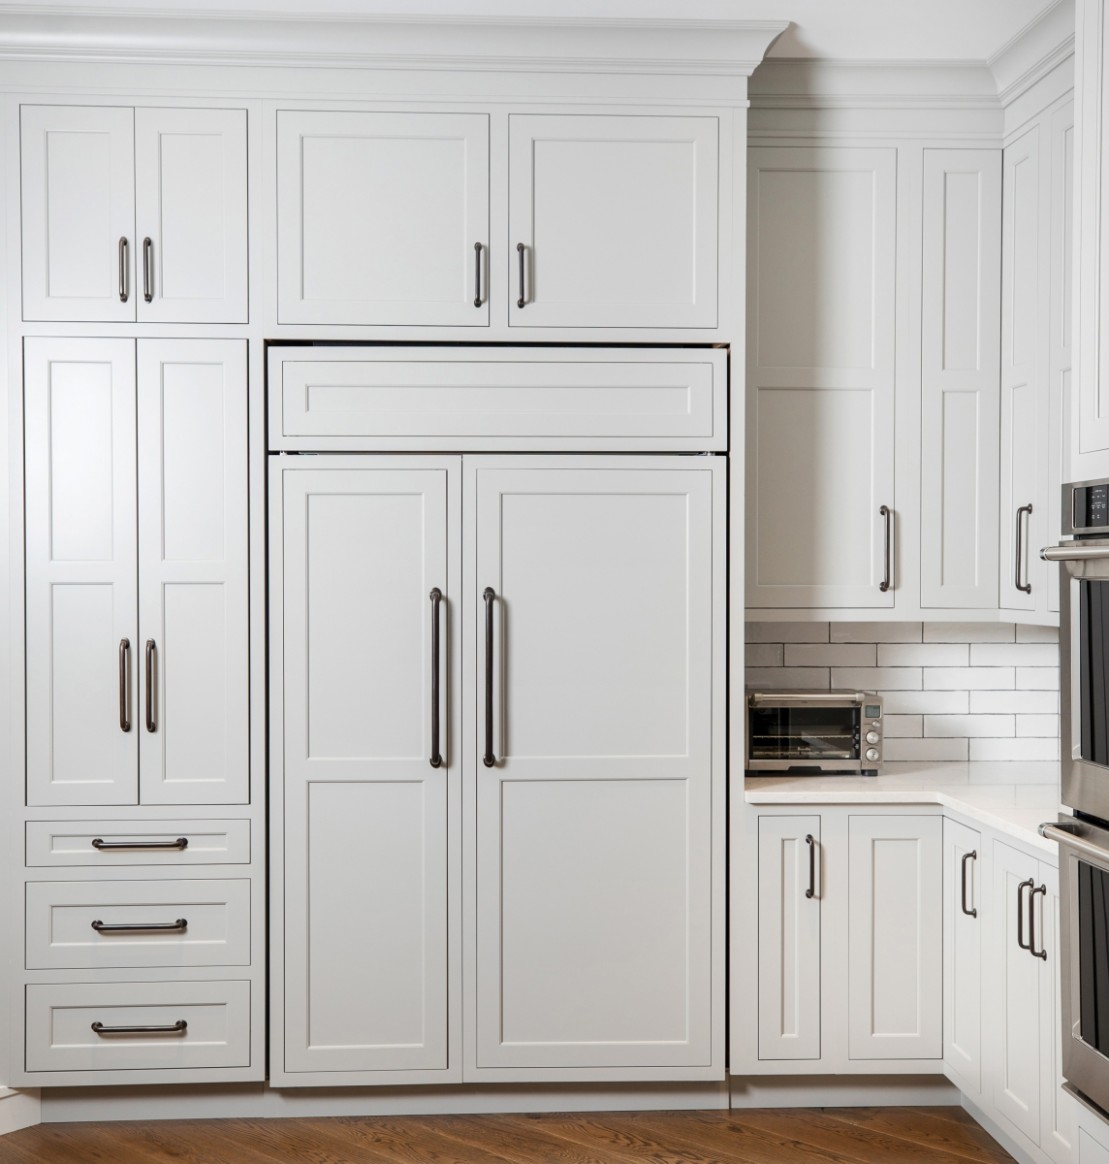 How to Hide Your Refrigerator In Plain Sight with Appliance Panels  - Kitchen Fridge Cabinet